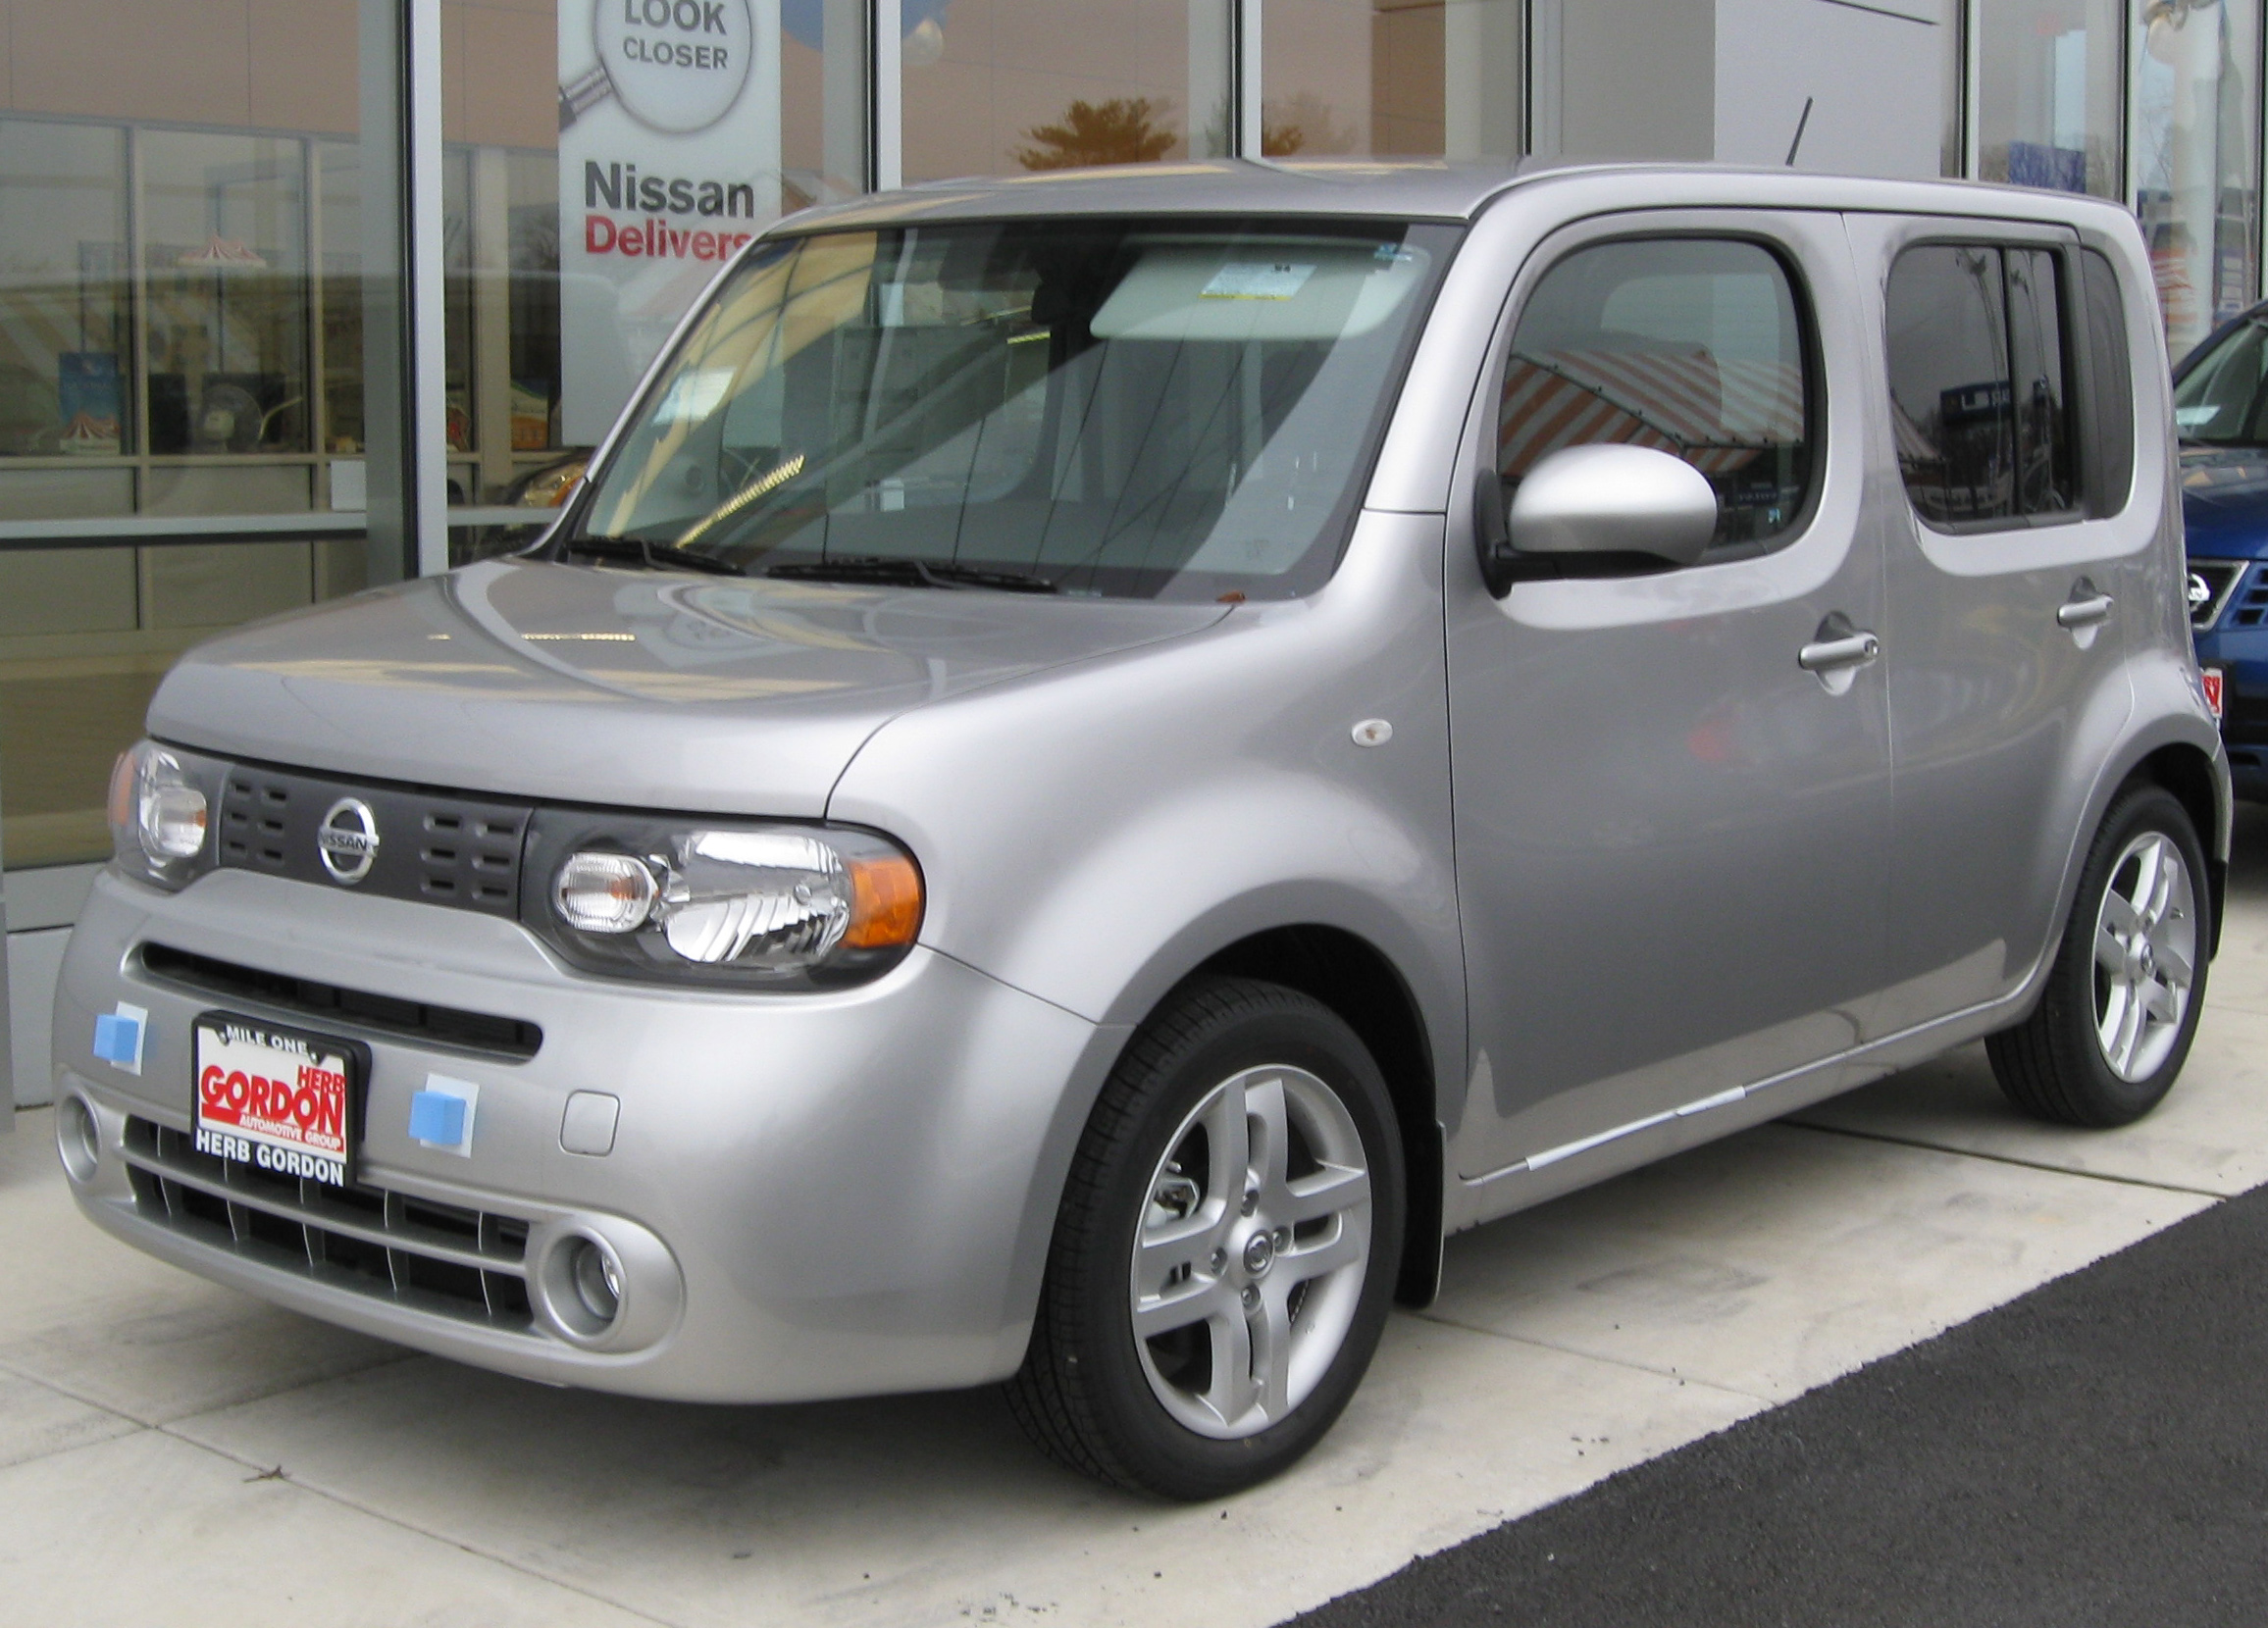 nissan cube iii 2009 pictures #1